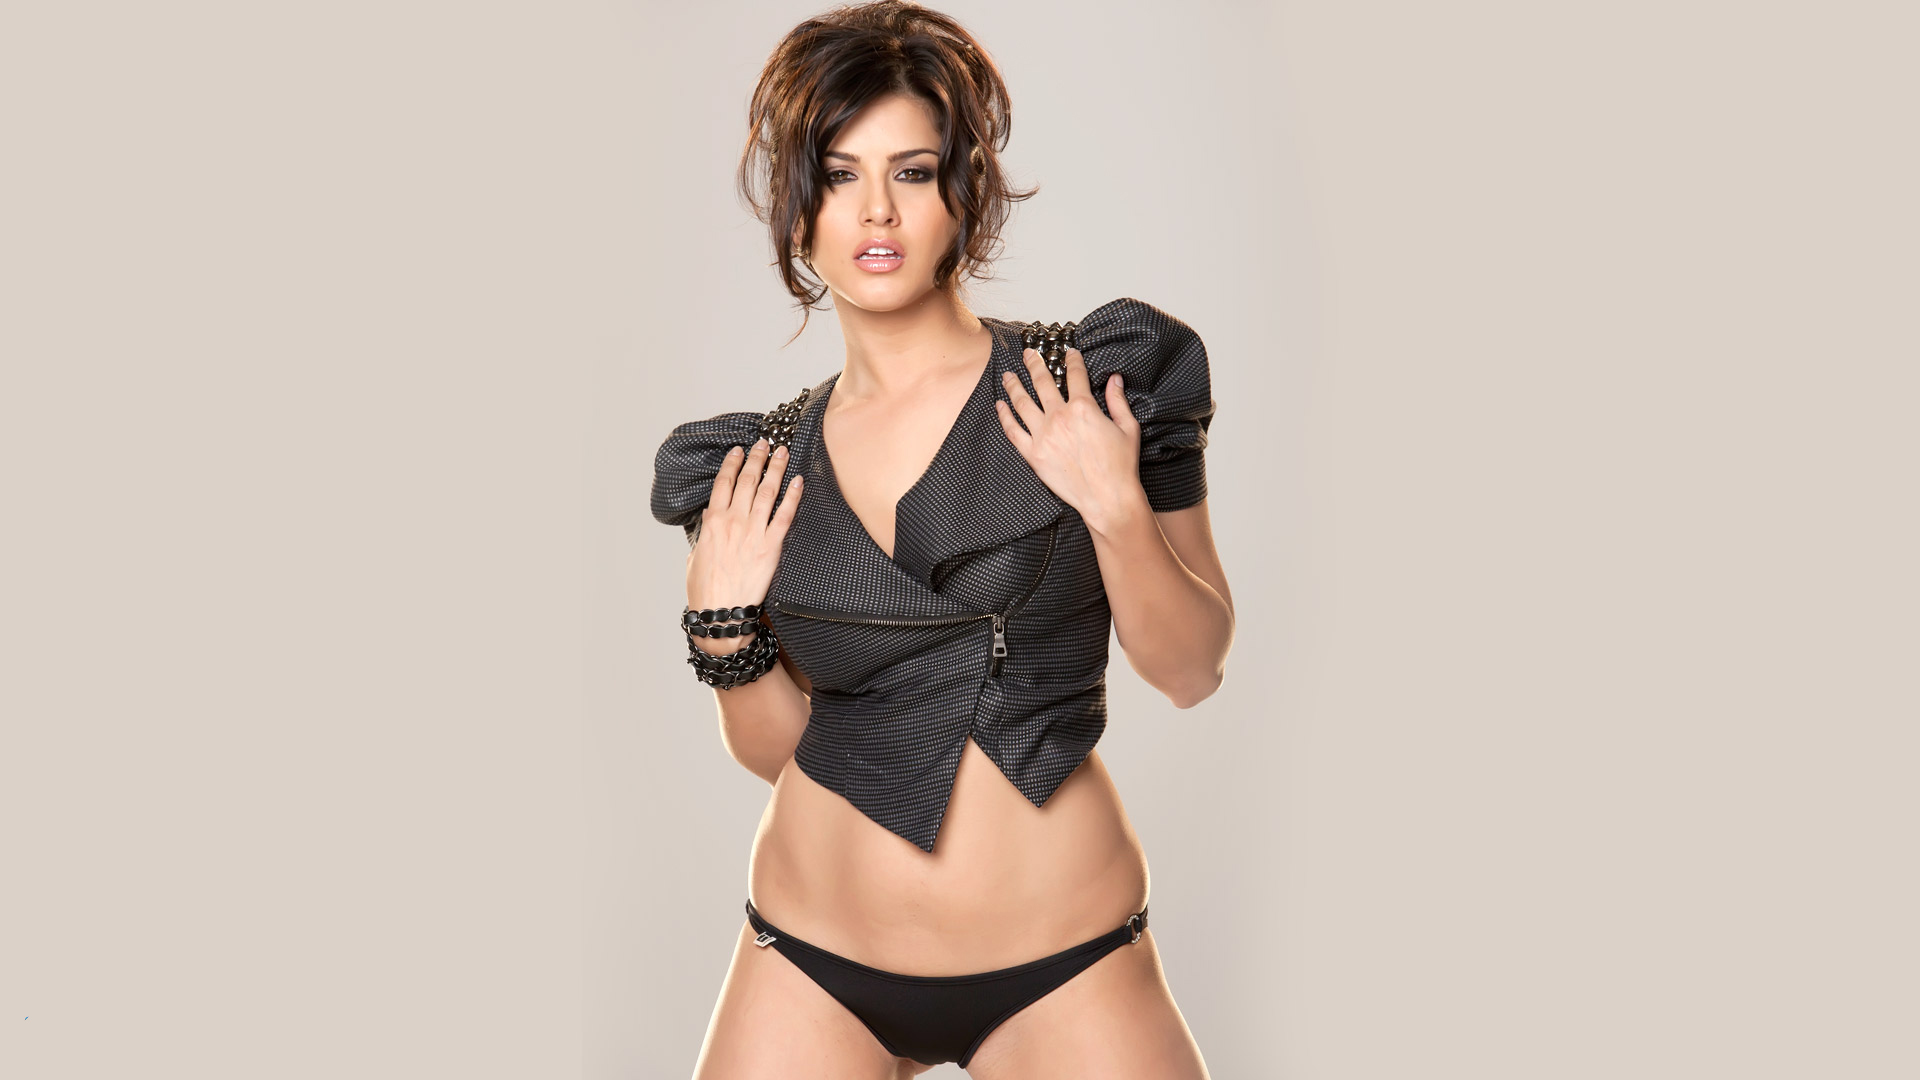 sunny leone in black latest hd wallpapers - facebook cover